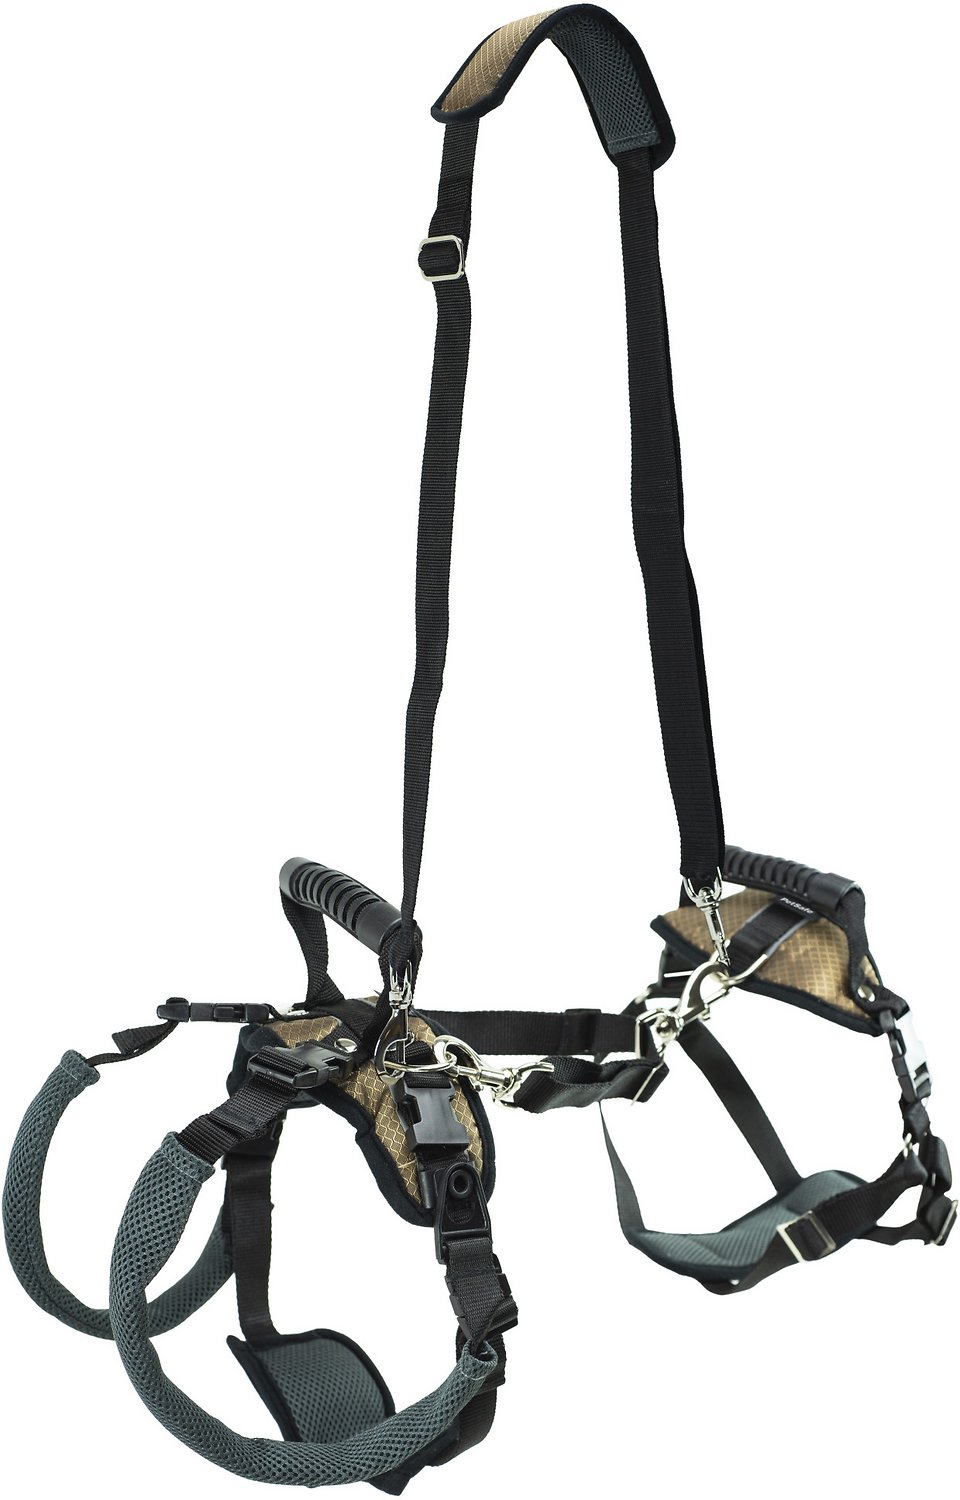 medium resolution of solvit carelift full front back lifting aid mobility dog harness